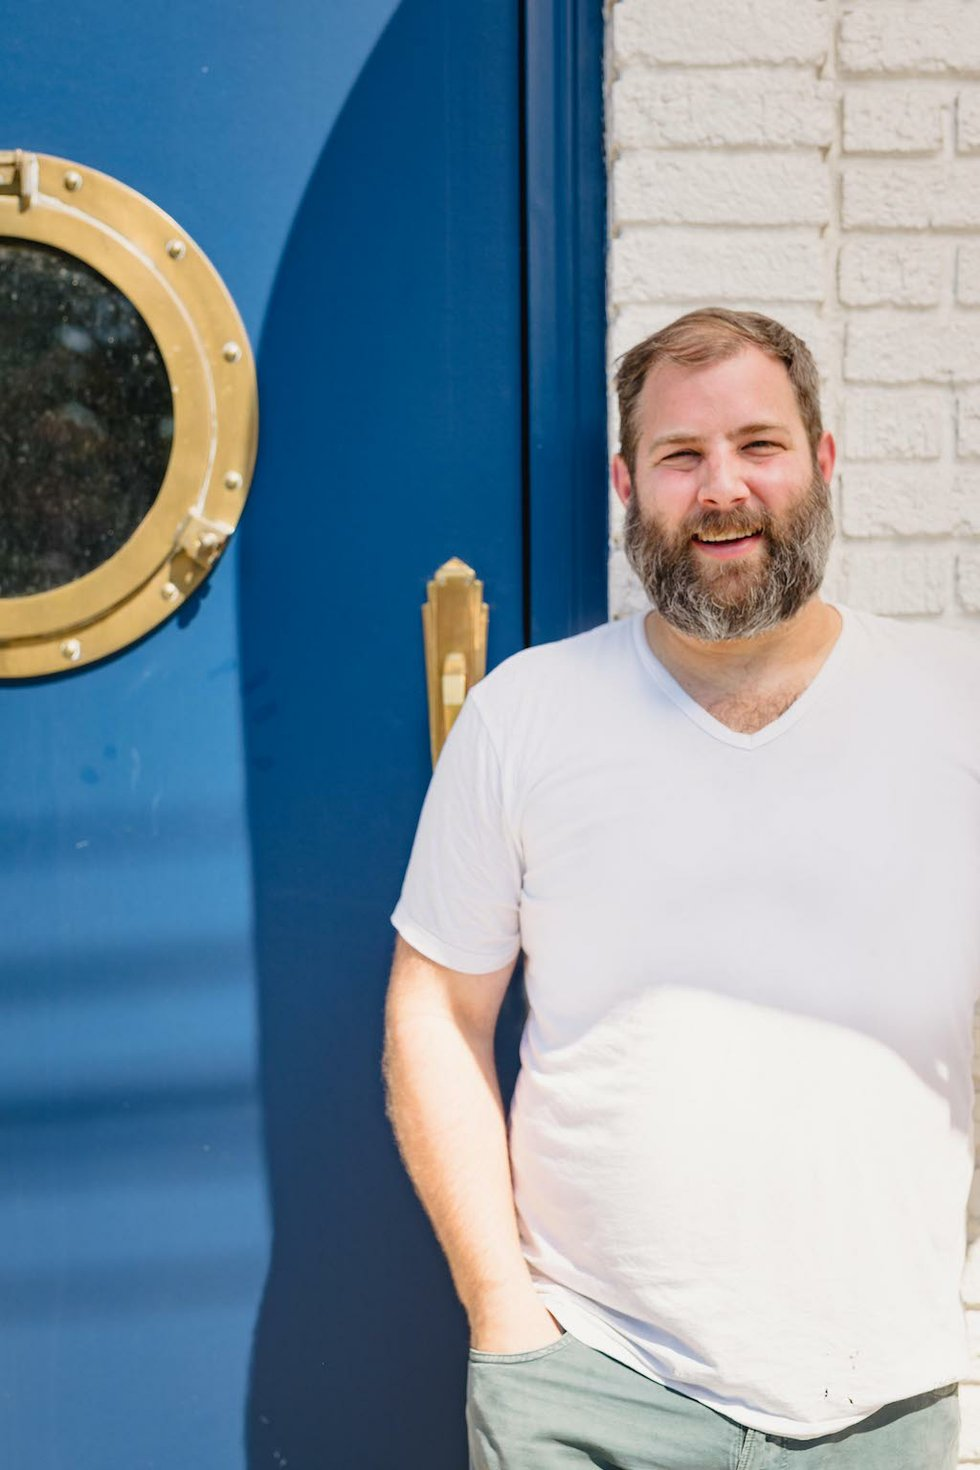 st-james-seafood-reopening-january-2020-chef-matt-kelly.jpg